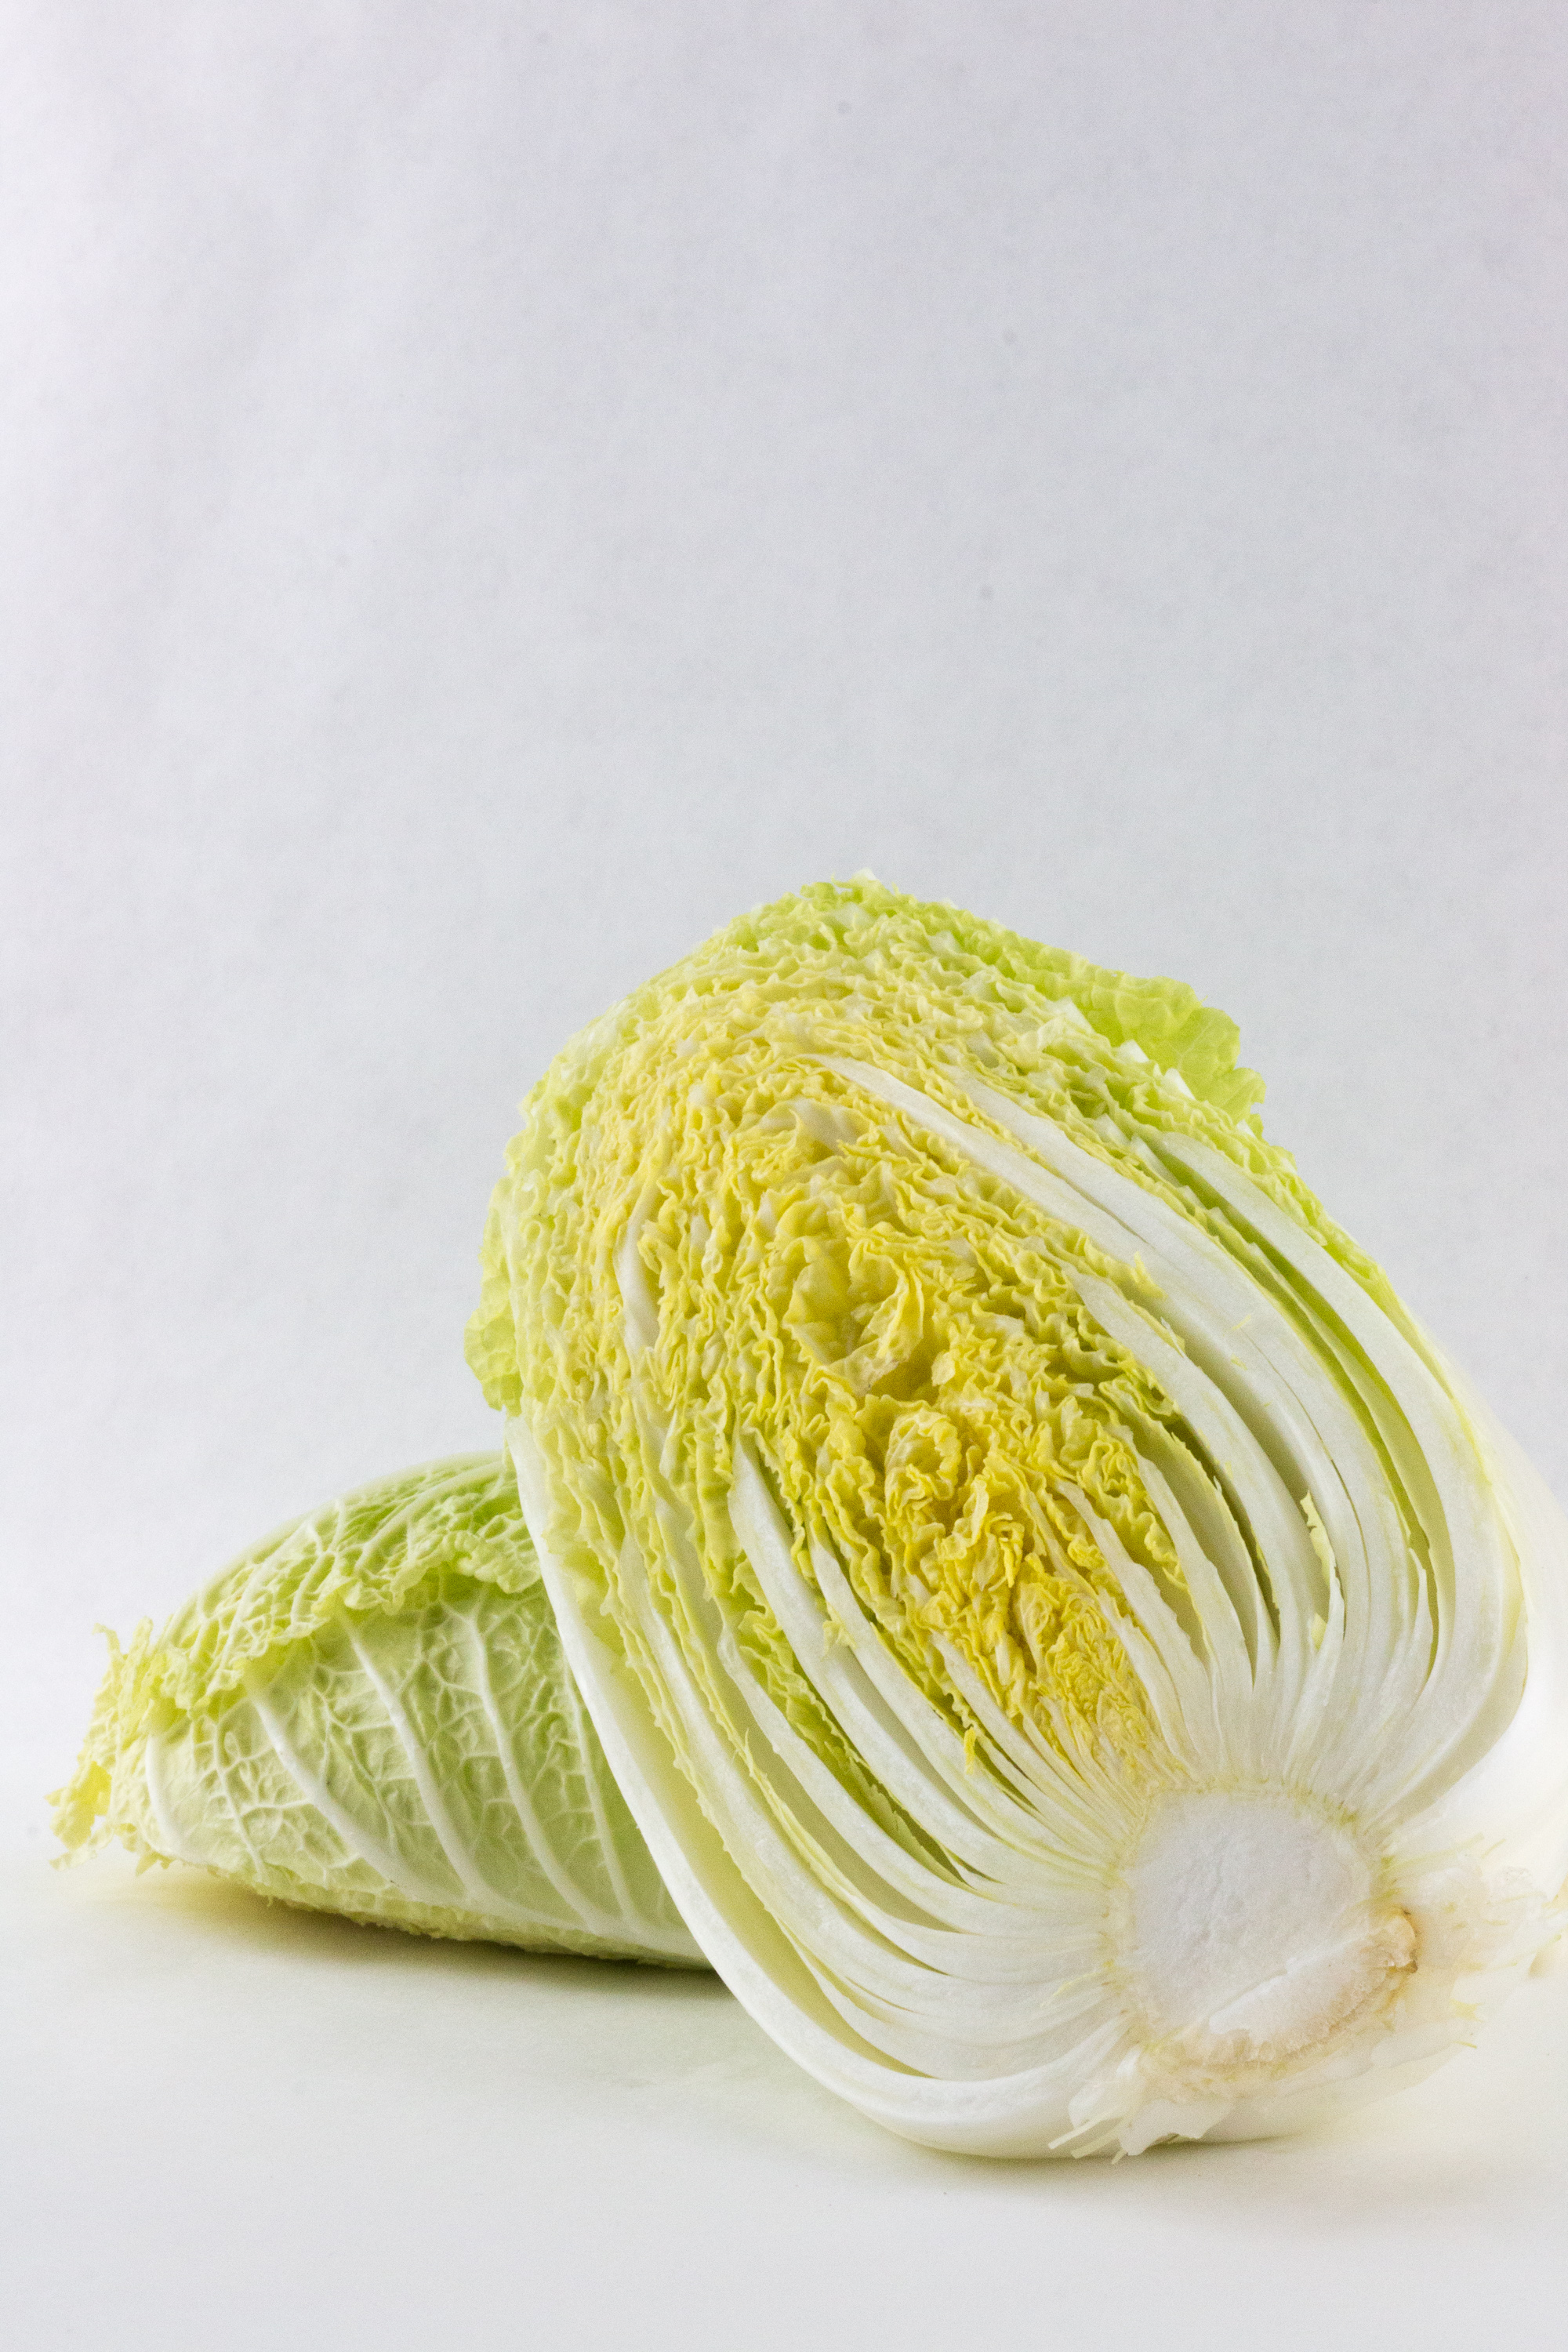 """Napa Cabbage """"inside out"""""""